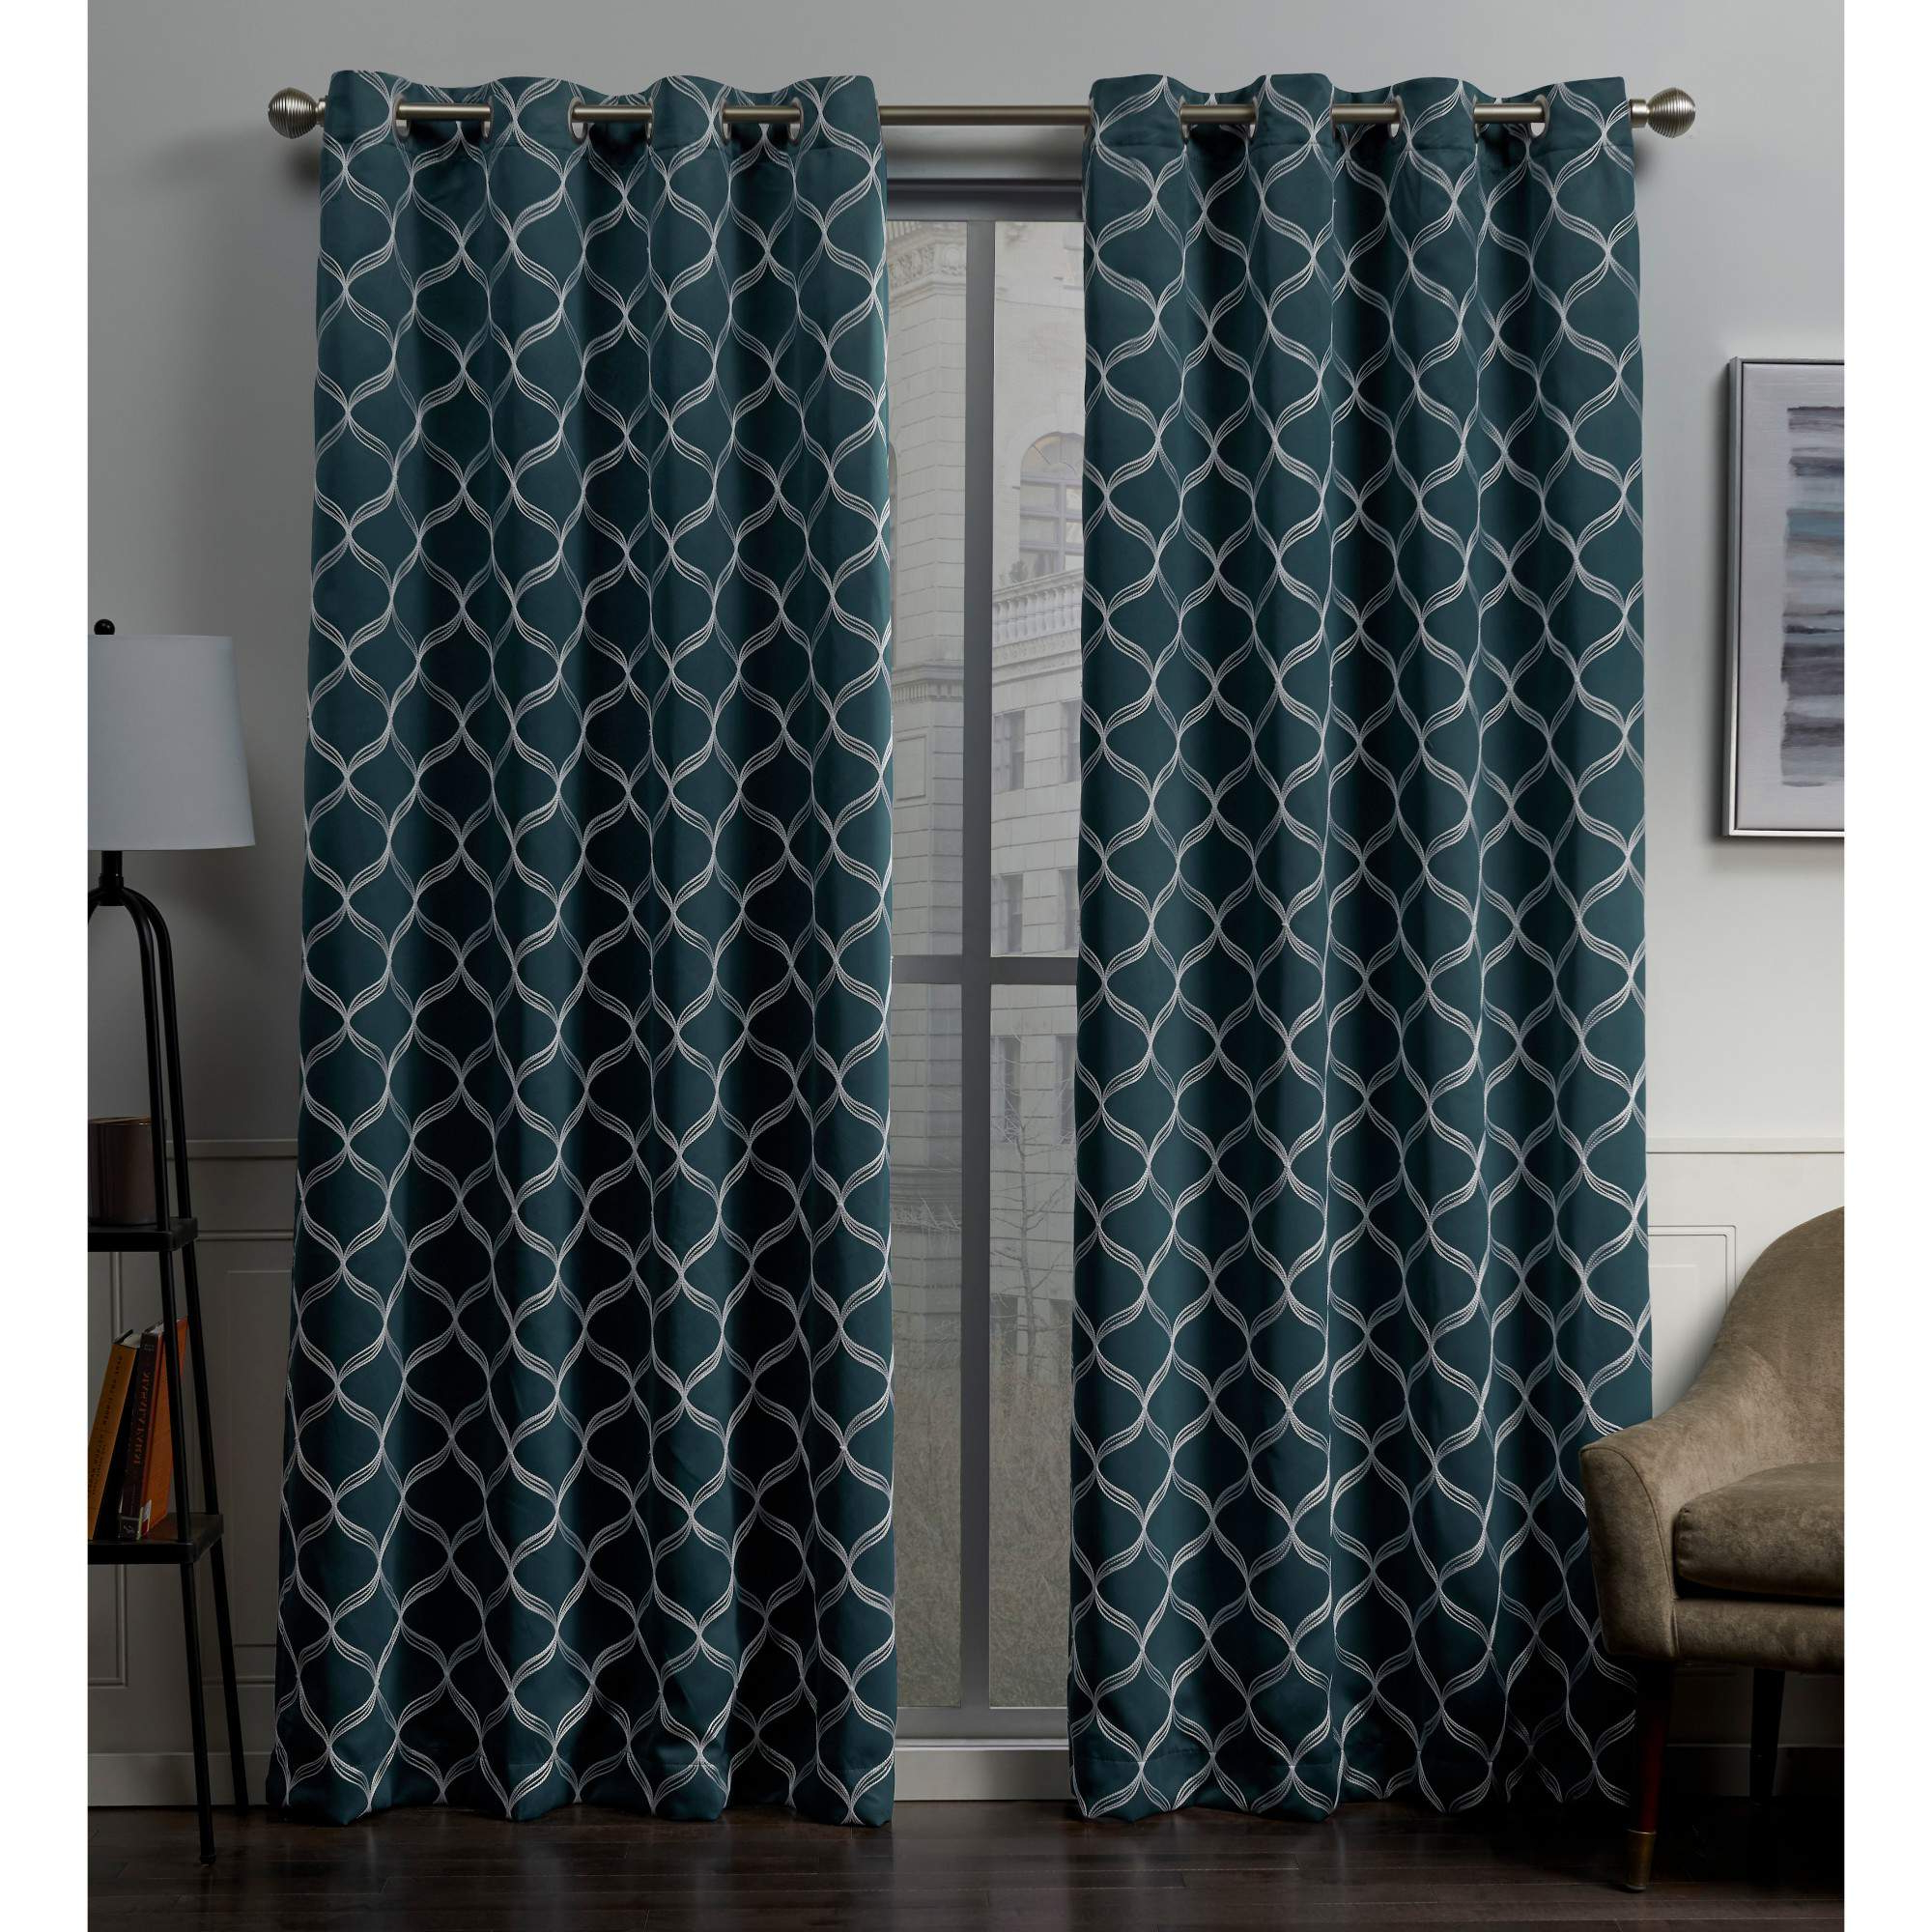 Popular Woven Blackout Grommet Top Curtain Panel Pairs Pertaining To Exclusive Home Amelia Woven Blackout Grommet Top Curtain Panel Pair (View 9 of 20)